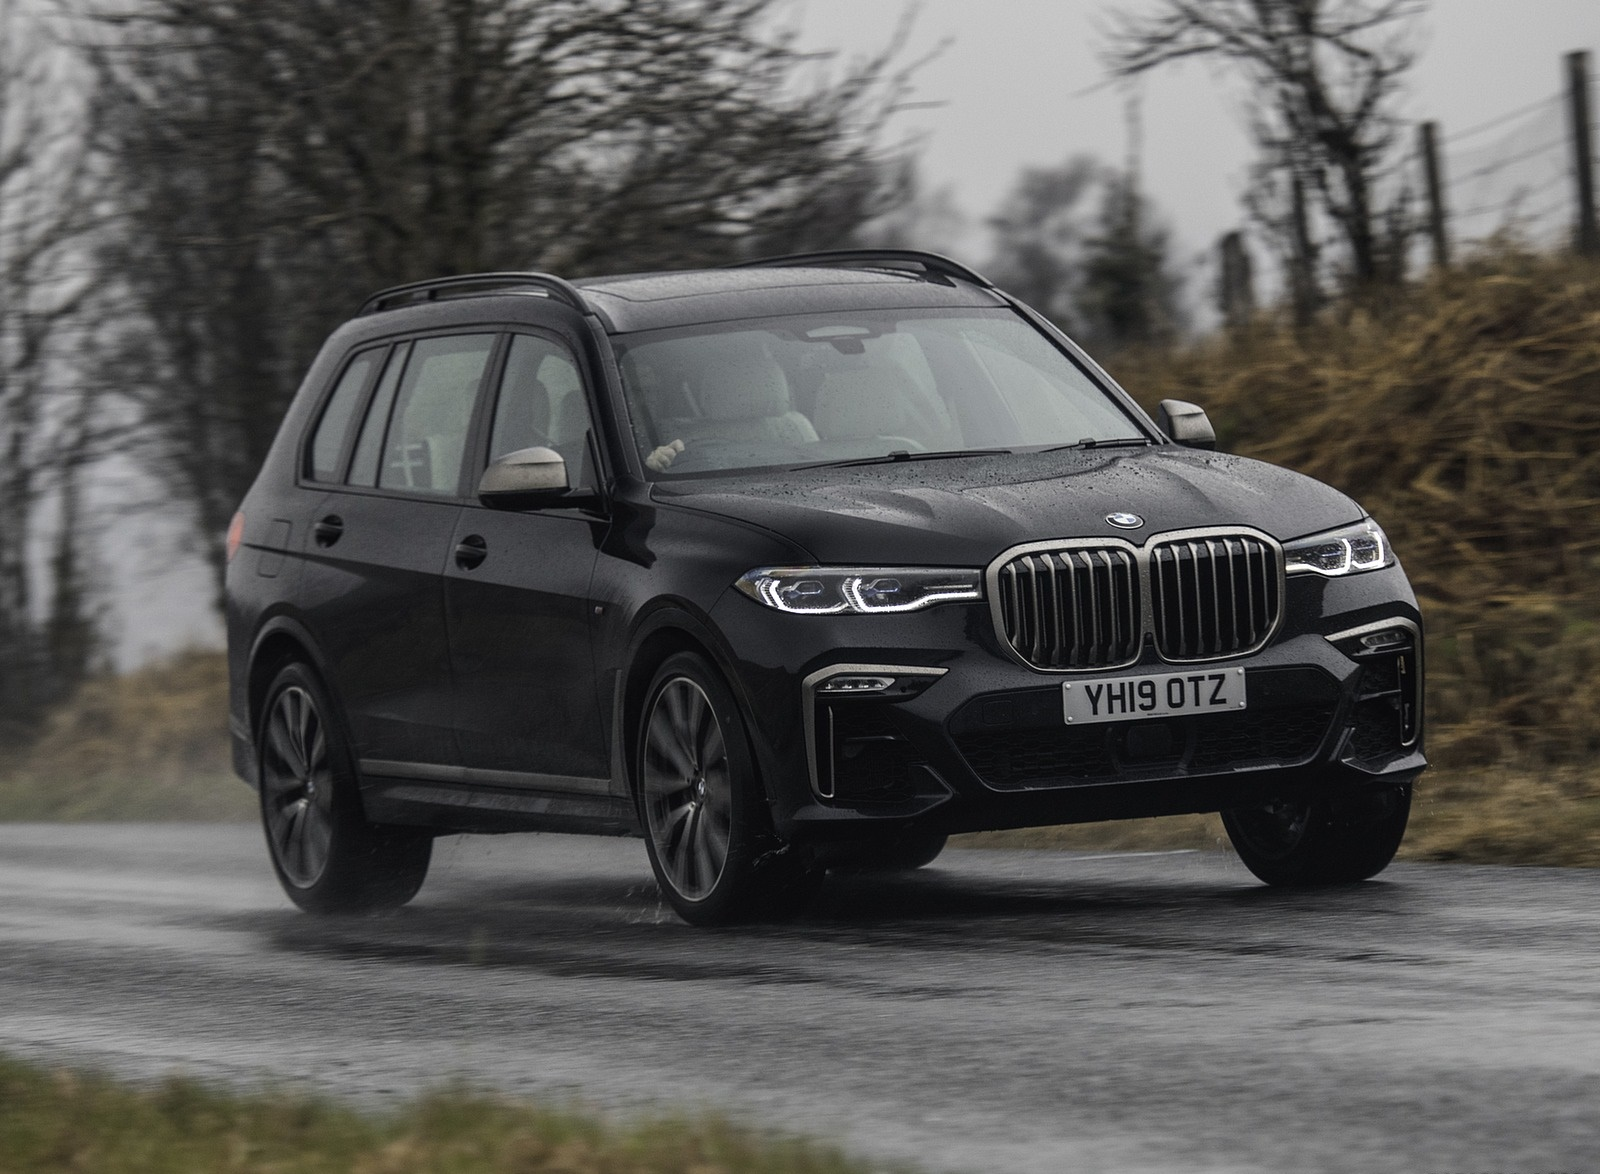 2019 BMW X7 M50d (UK-Spec) Front Three-Quarter Wallpapers (4)